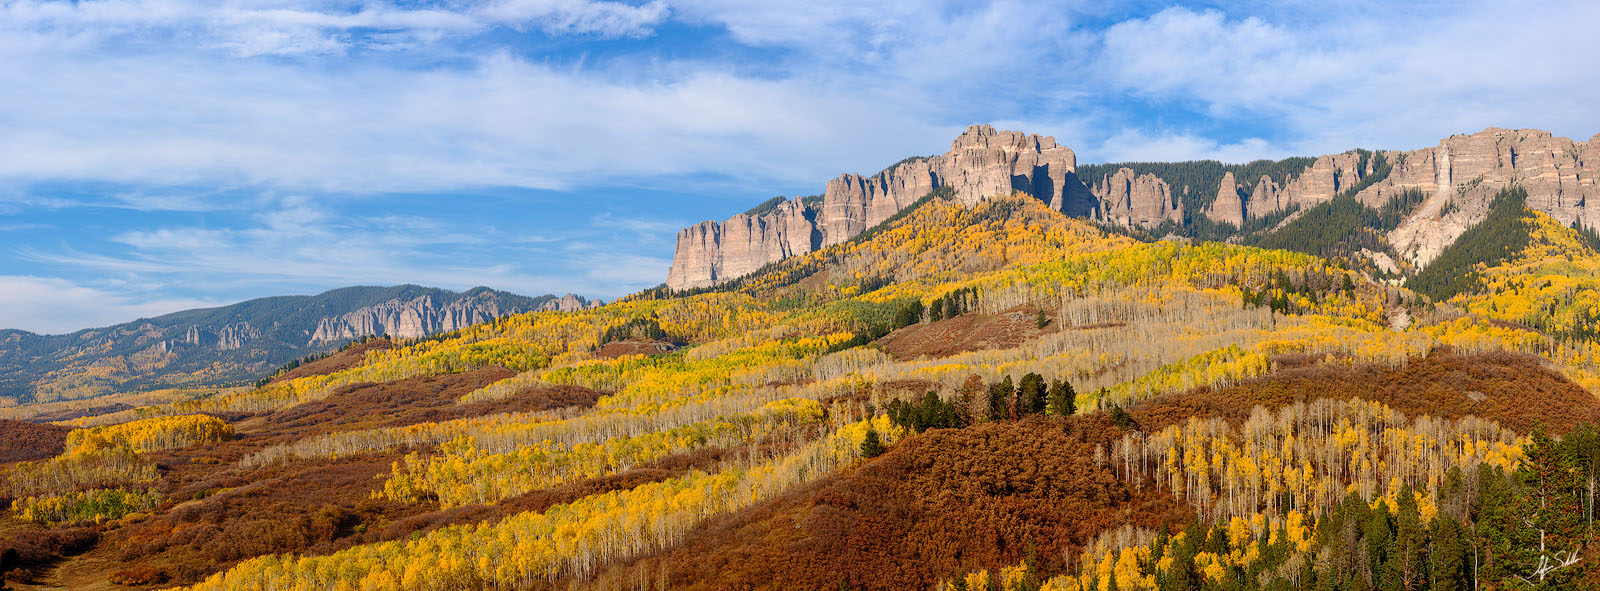 A panoramic view of fall color, courtest of aspen trees and scrub oaks, below the towering cliffs of Cimarron Ridge along the...